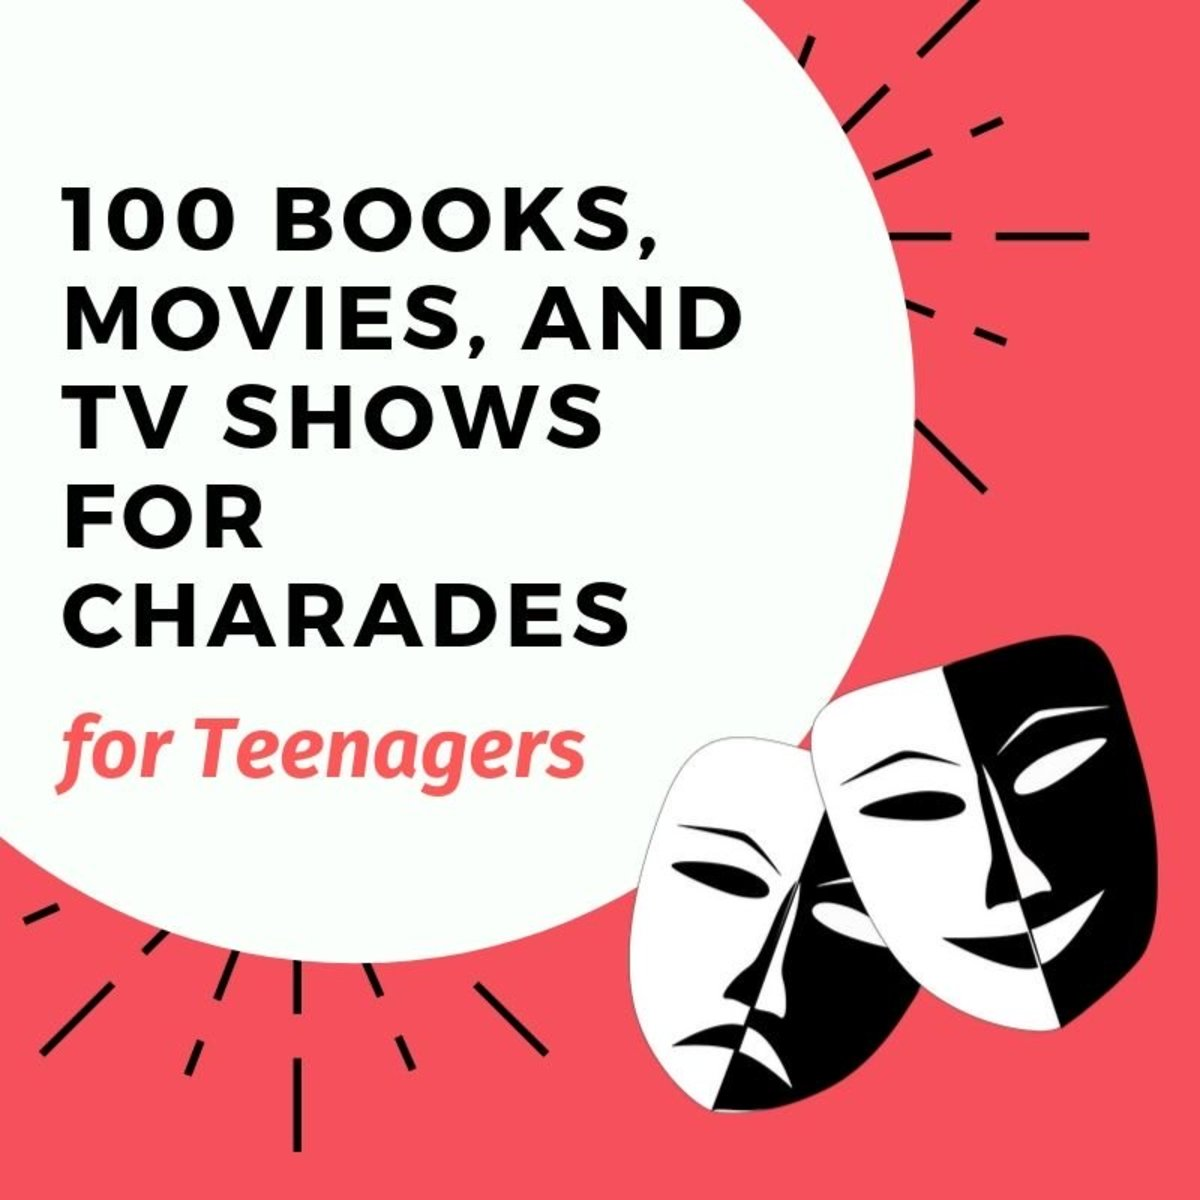 Charades is a fun game for teenagers and the rules are simple.